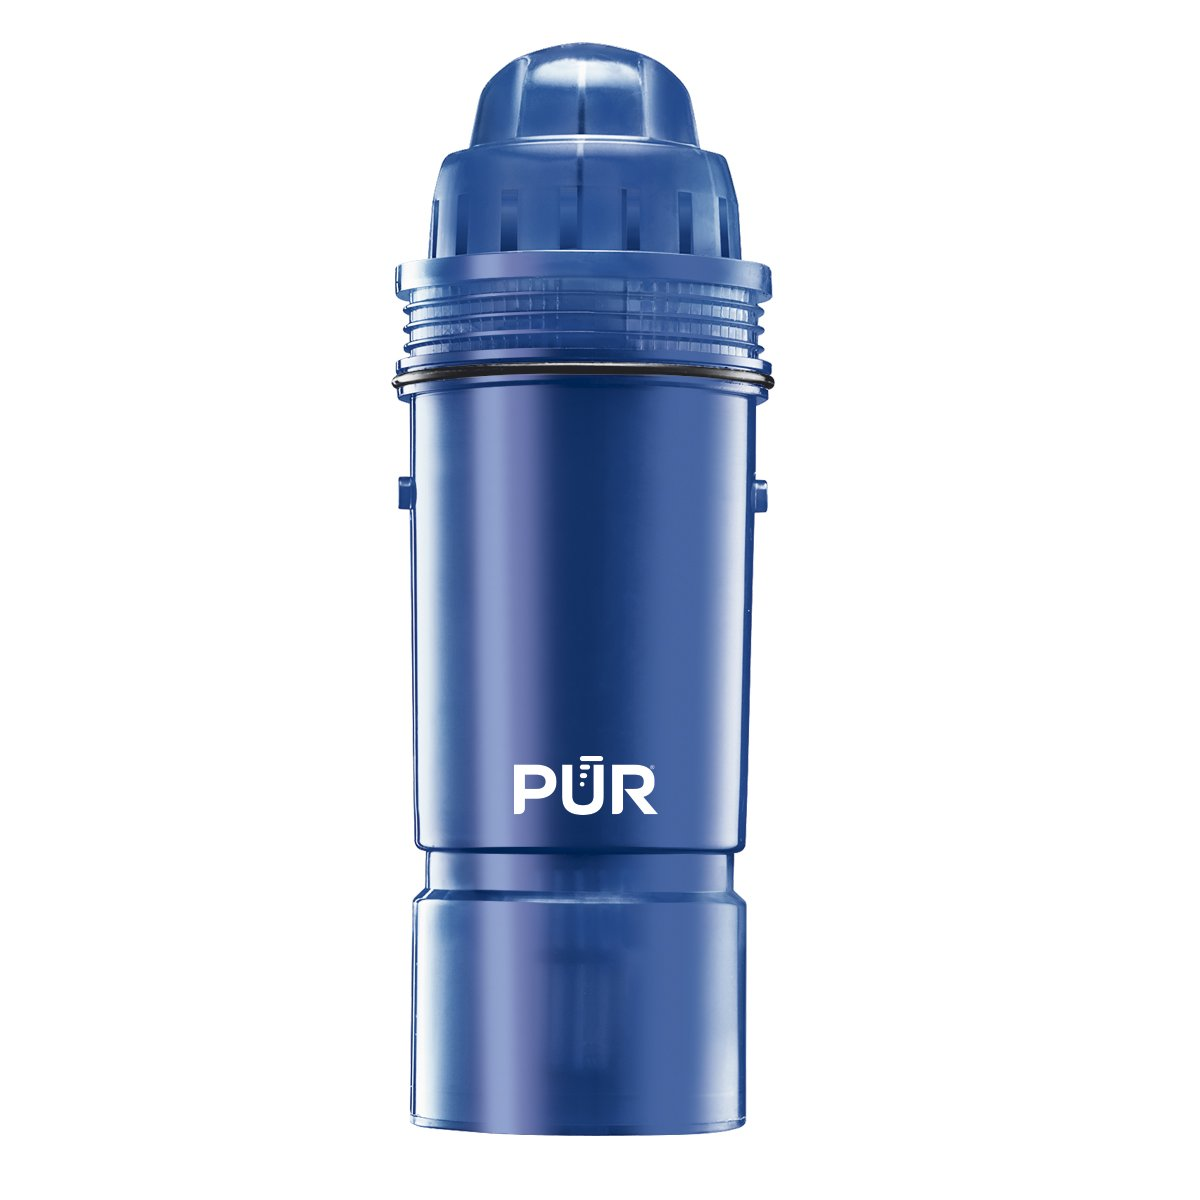 PUR Basic Water Pitcher 2-Stage Replacement Filter (4 Pack) by PUR